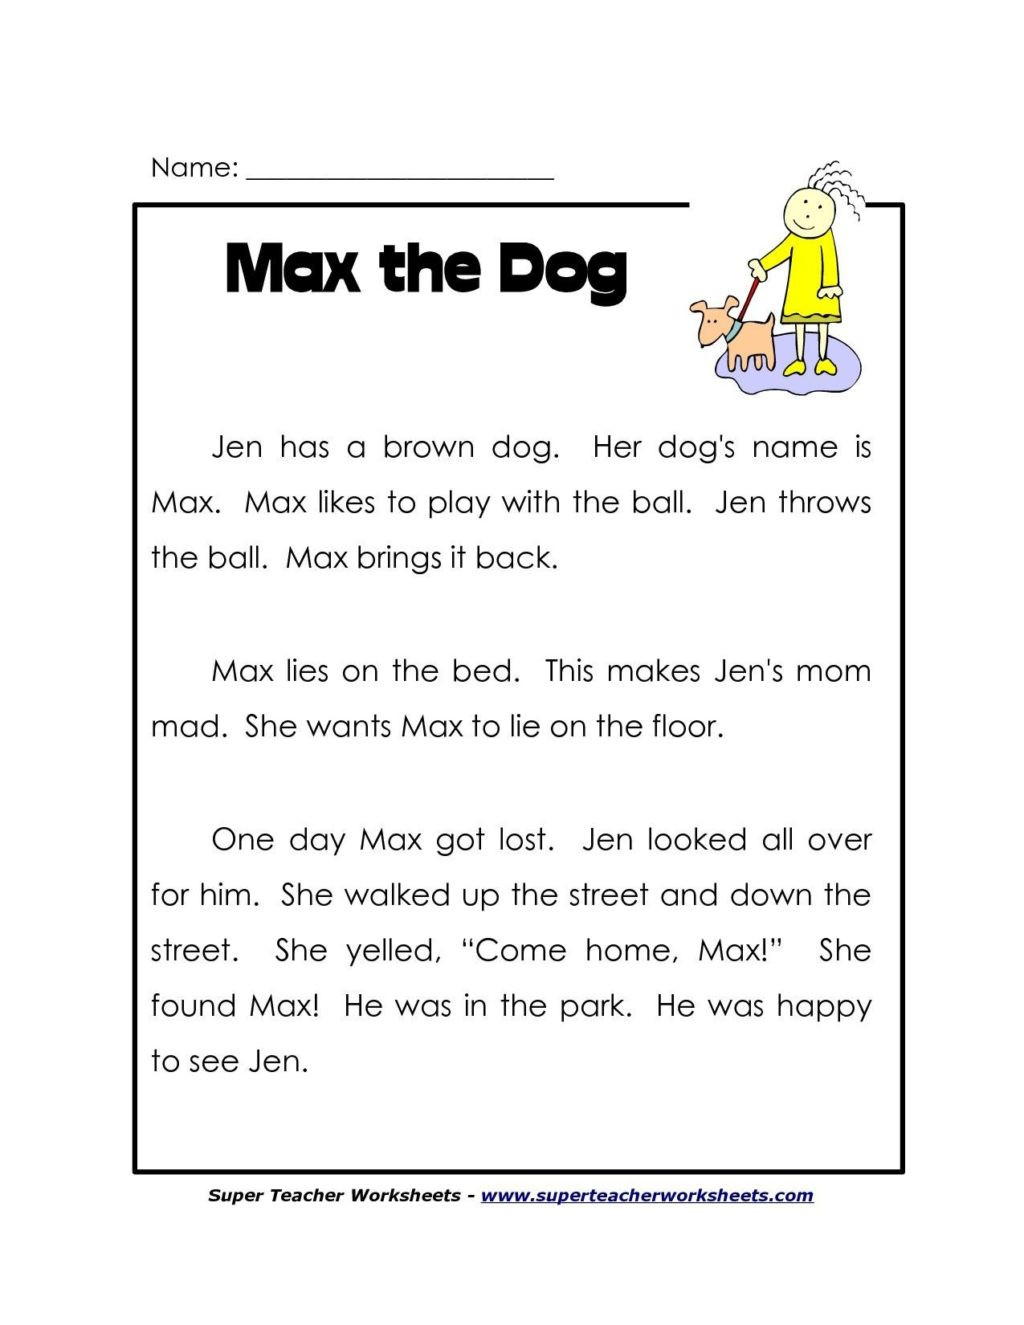 Grade 1 Reading Worksheets Worksheet Reading Worskheetsion Worksheets for Grade Free